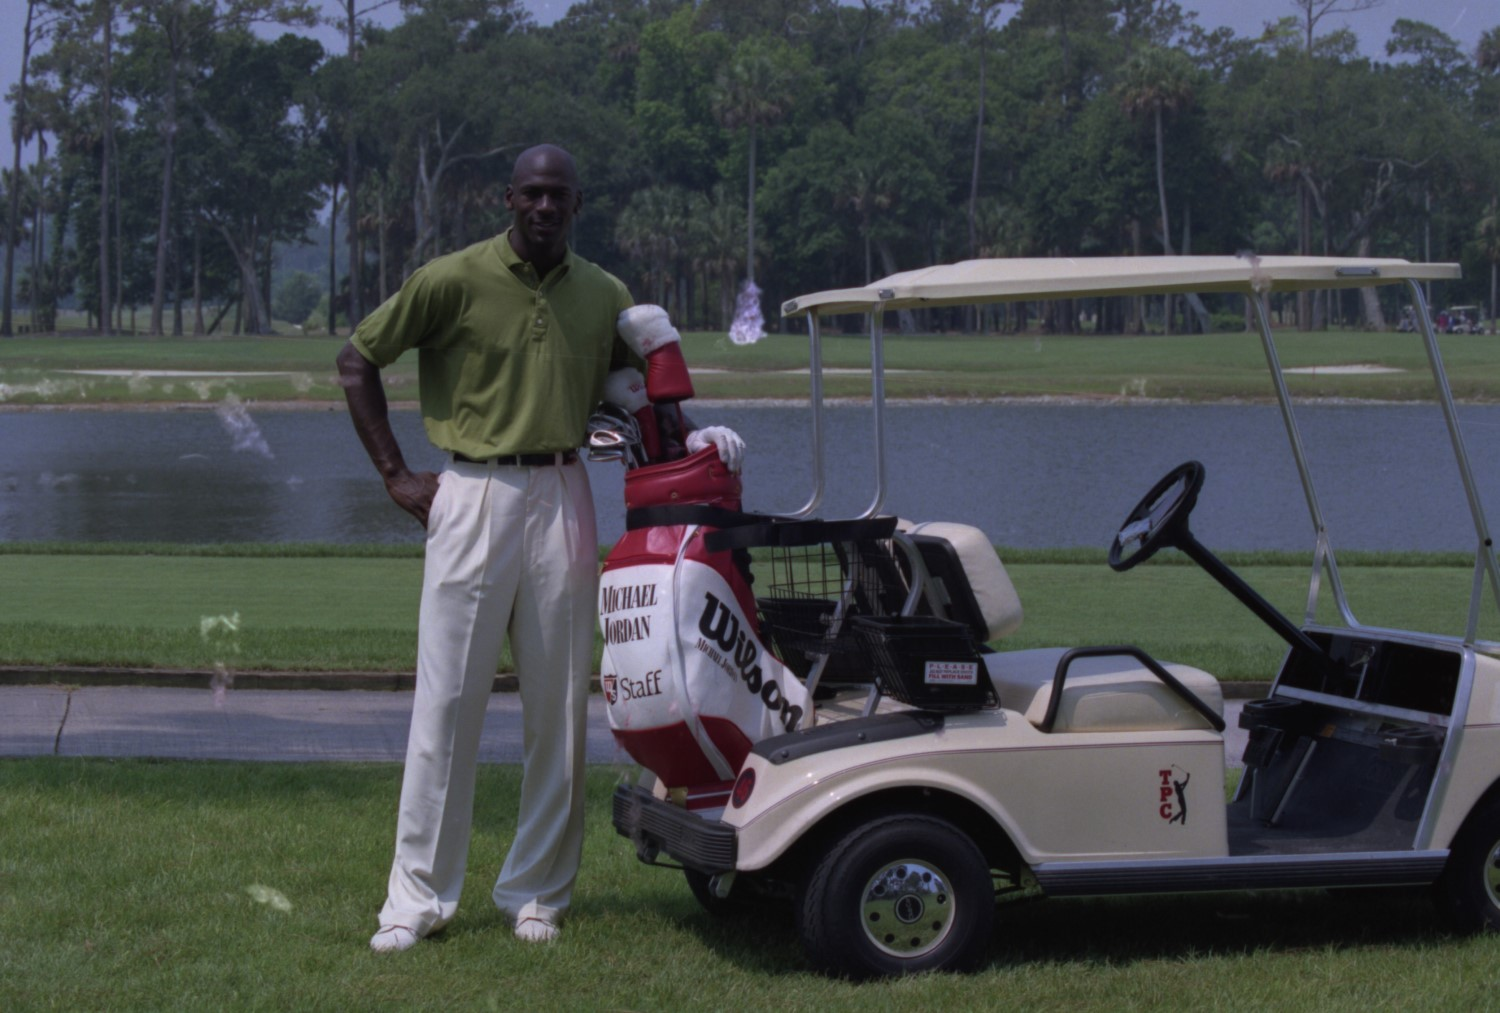 Retired NBA superstar Michael Jordan spends plenty of time on the golf course and is a member at several clubs. including Medalist in Florida, where he met aspiring PGA Tour player Dominic Bozzelli. PGA Archives/Getty Images